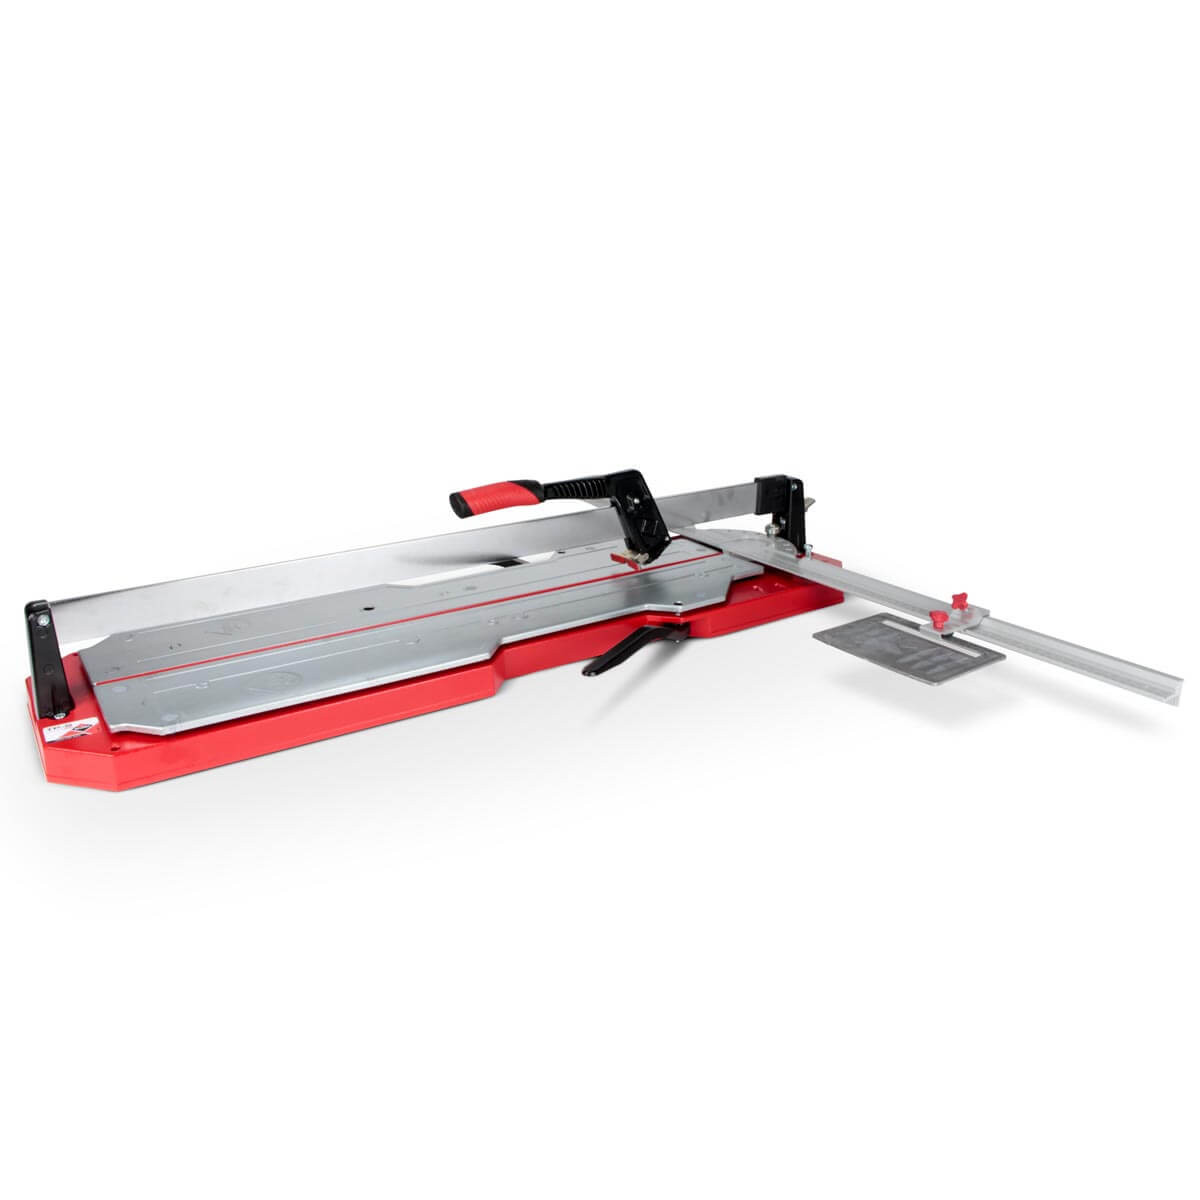 Rubi TP-S Tile Cutter Guide